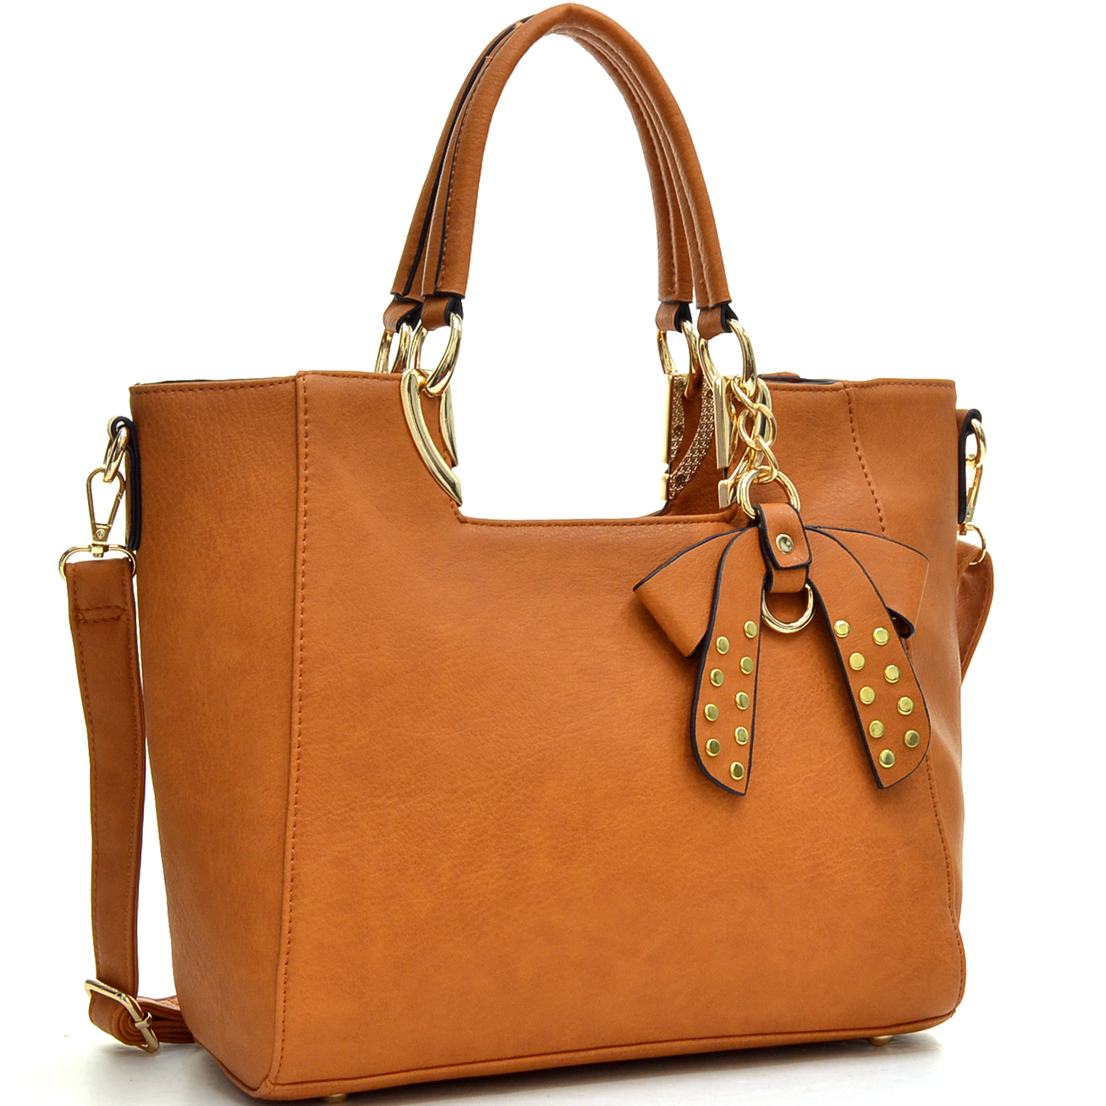 Metal Handle Faux Leather Structured Satchel with Bow Accent